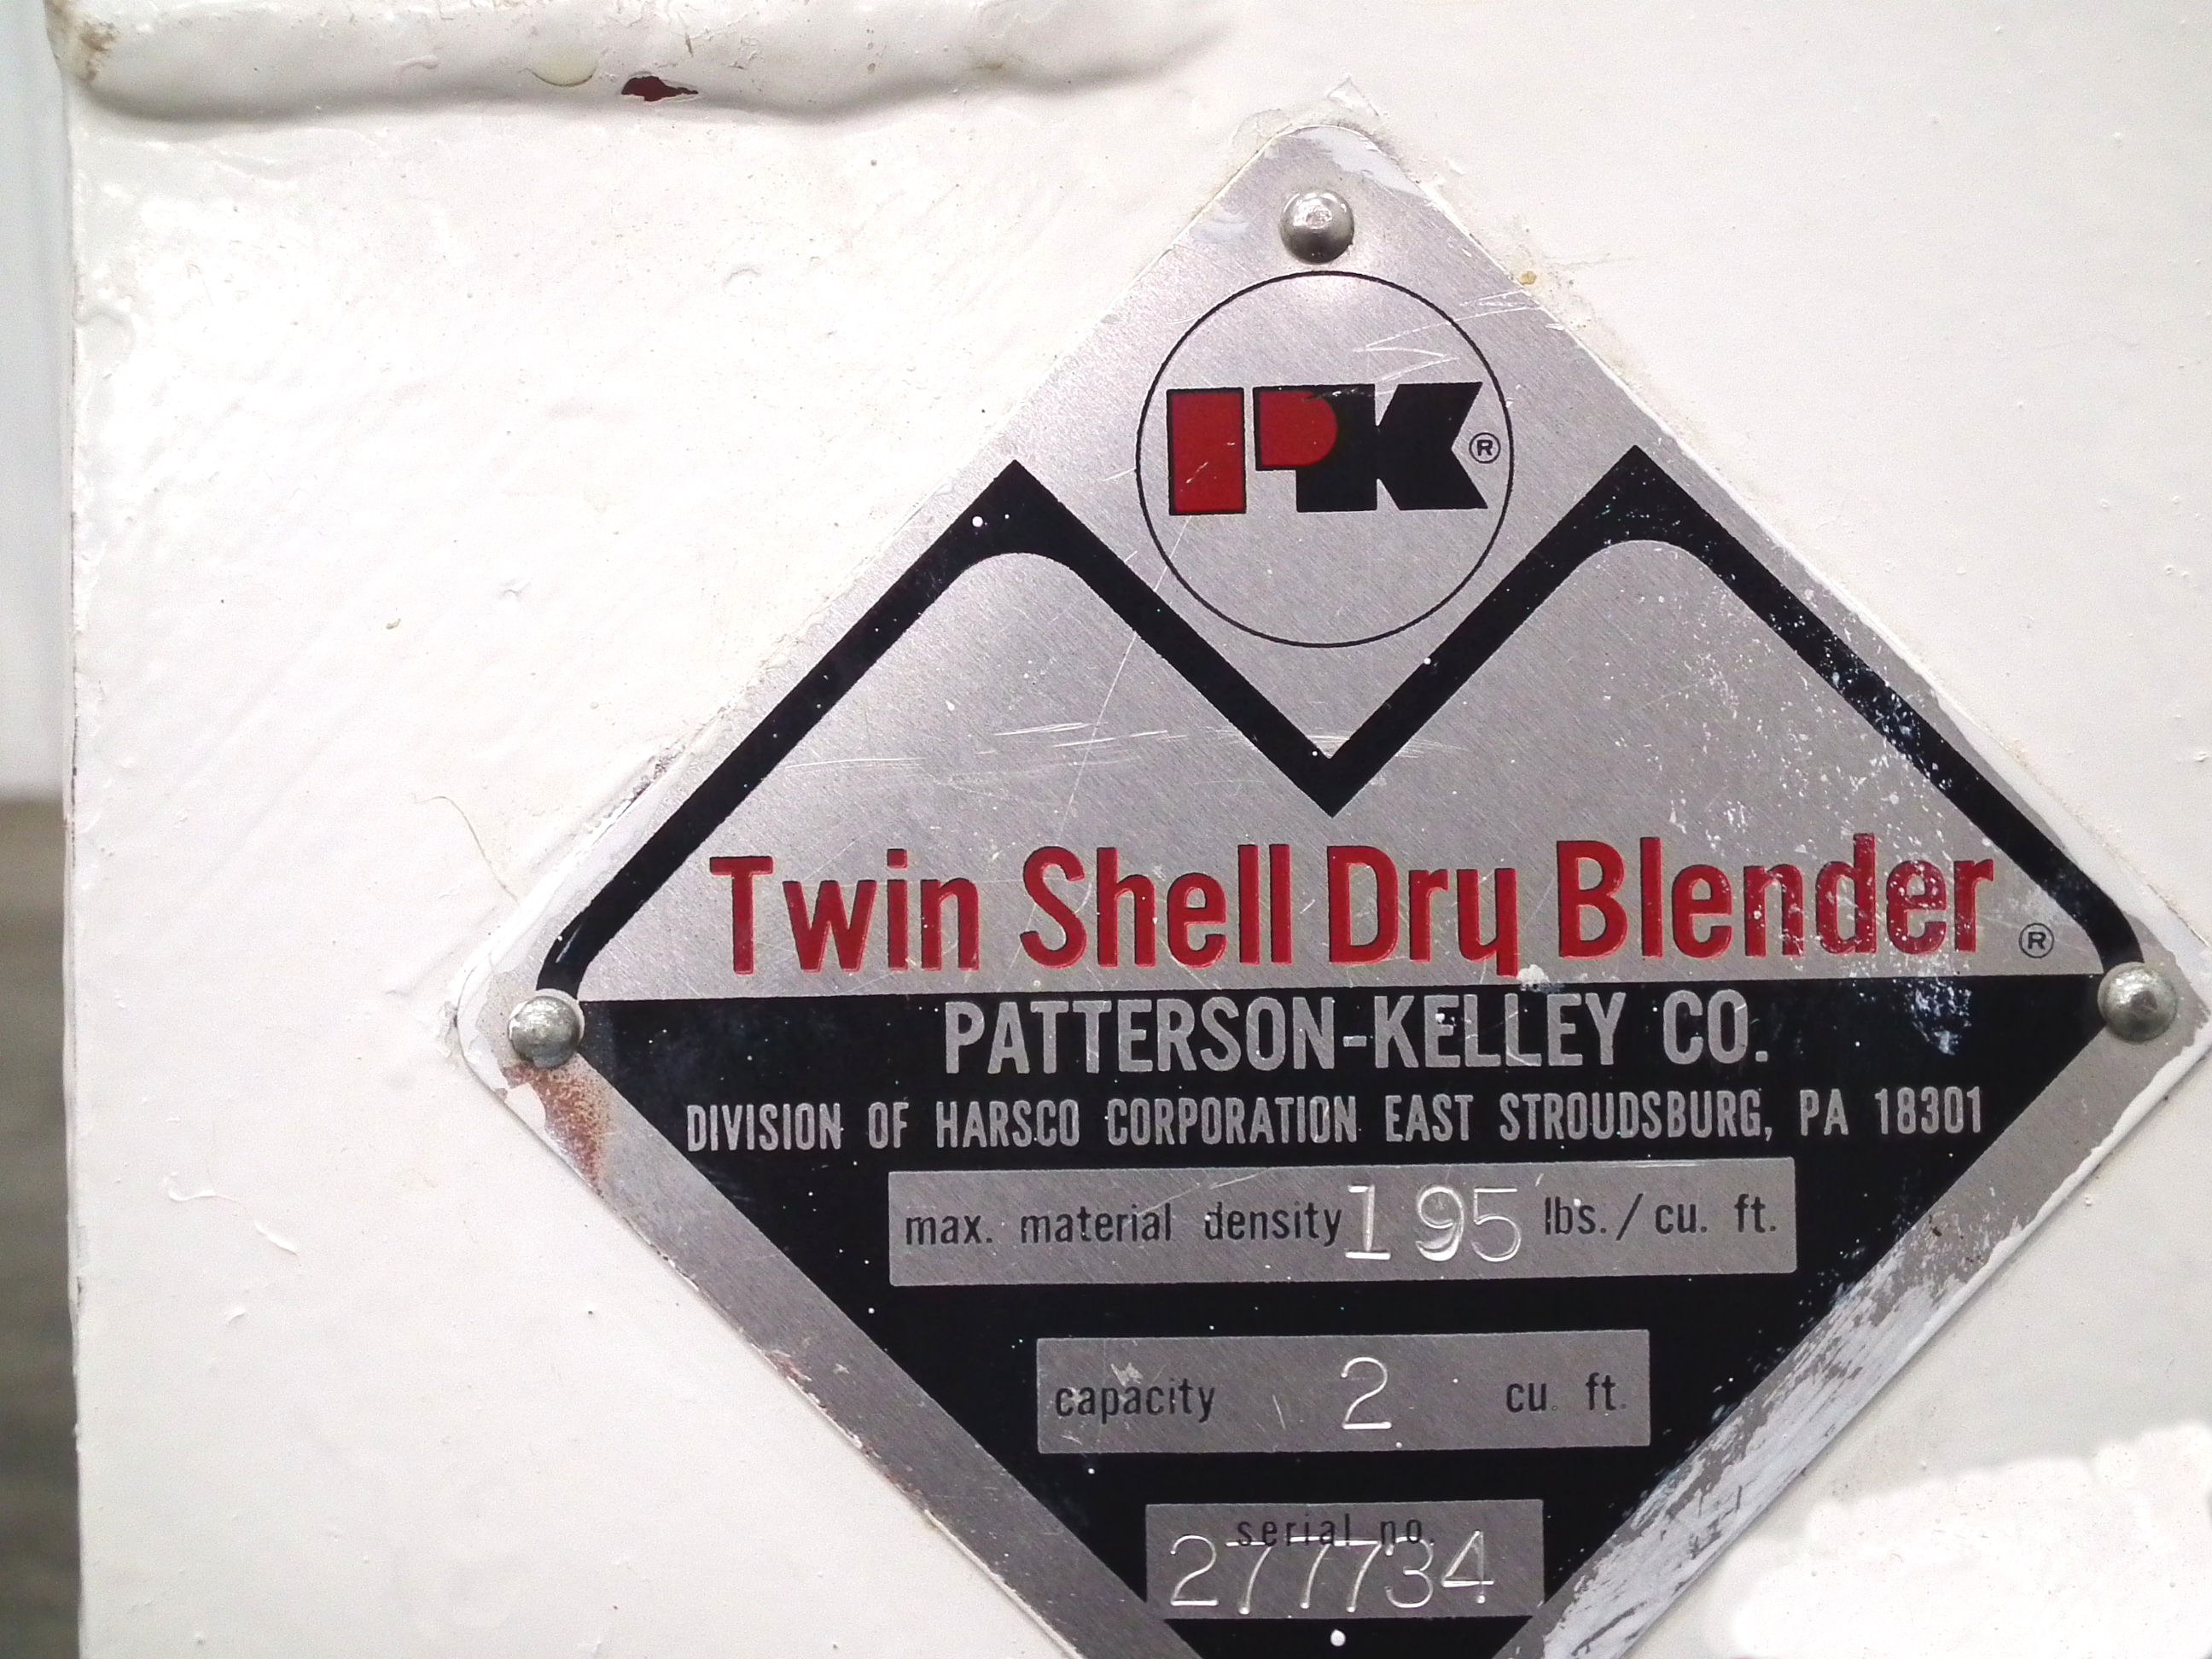 Patterson-Kelley Twin Shell 2 Cubic Foot Dry Mixer A4767 - Image 8 of 8